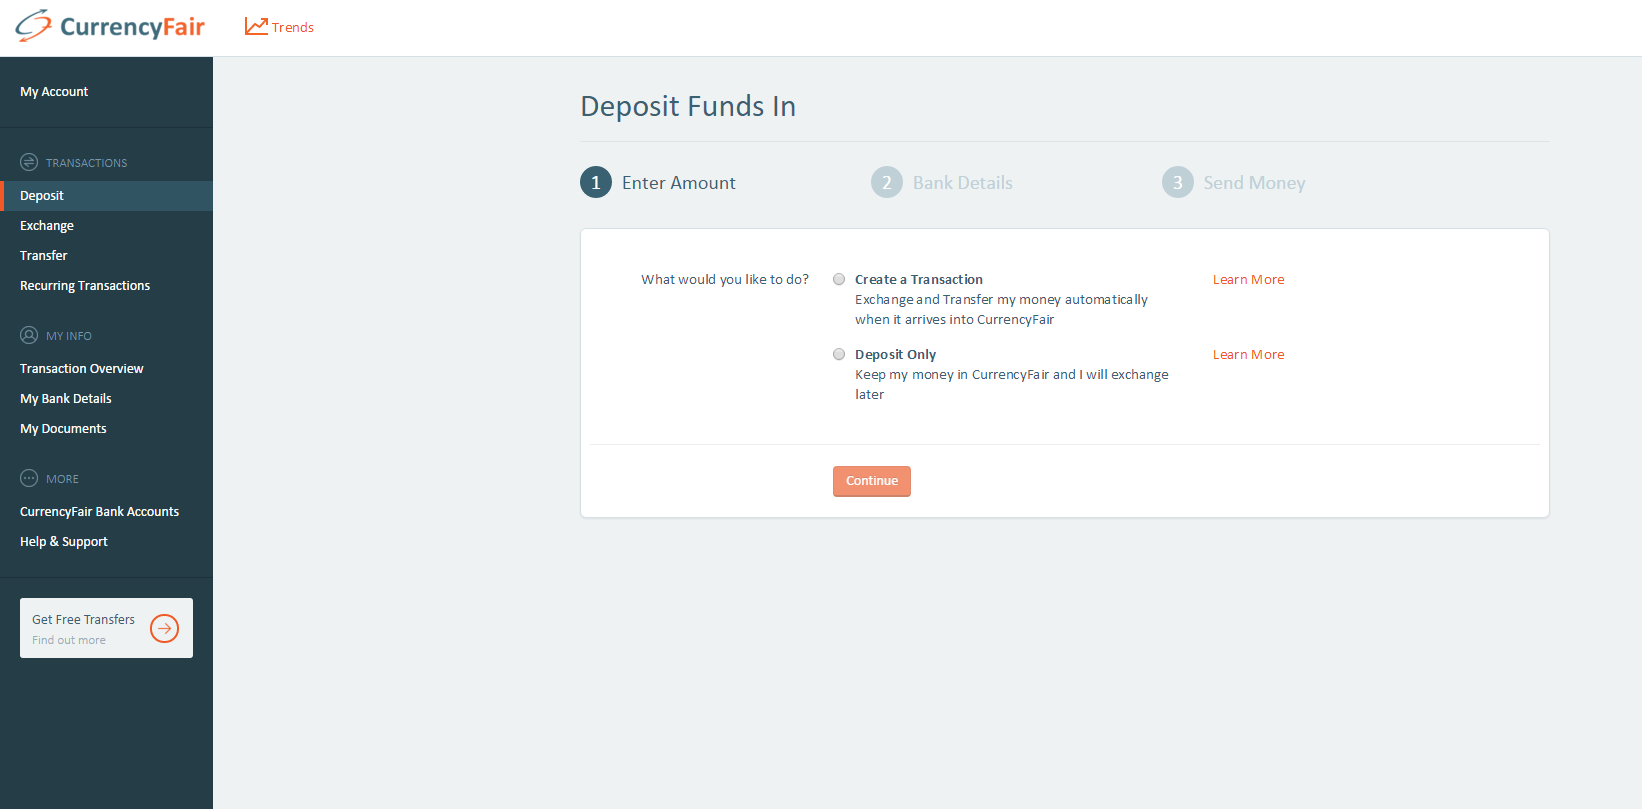 create-transaction-deposit